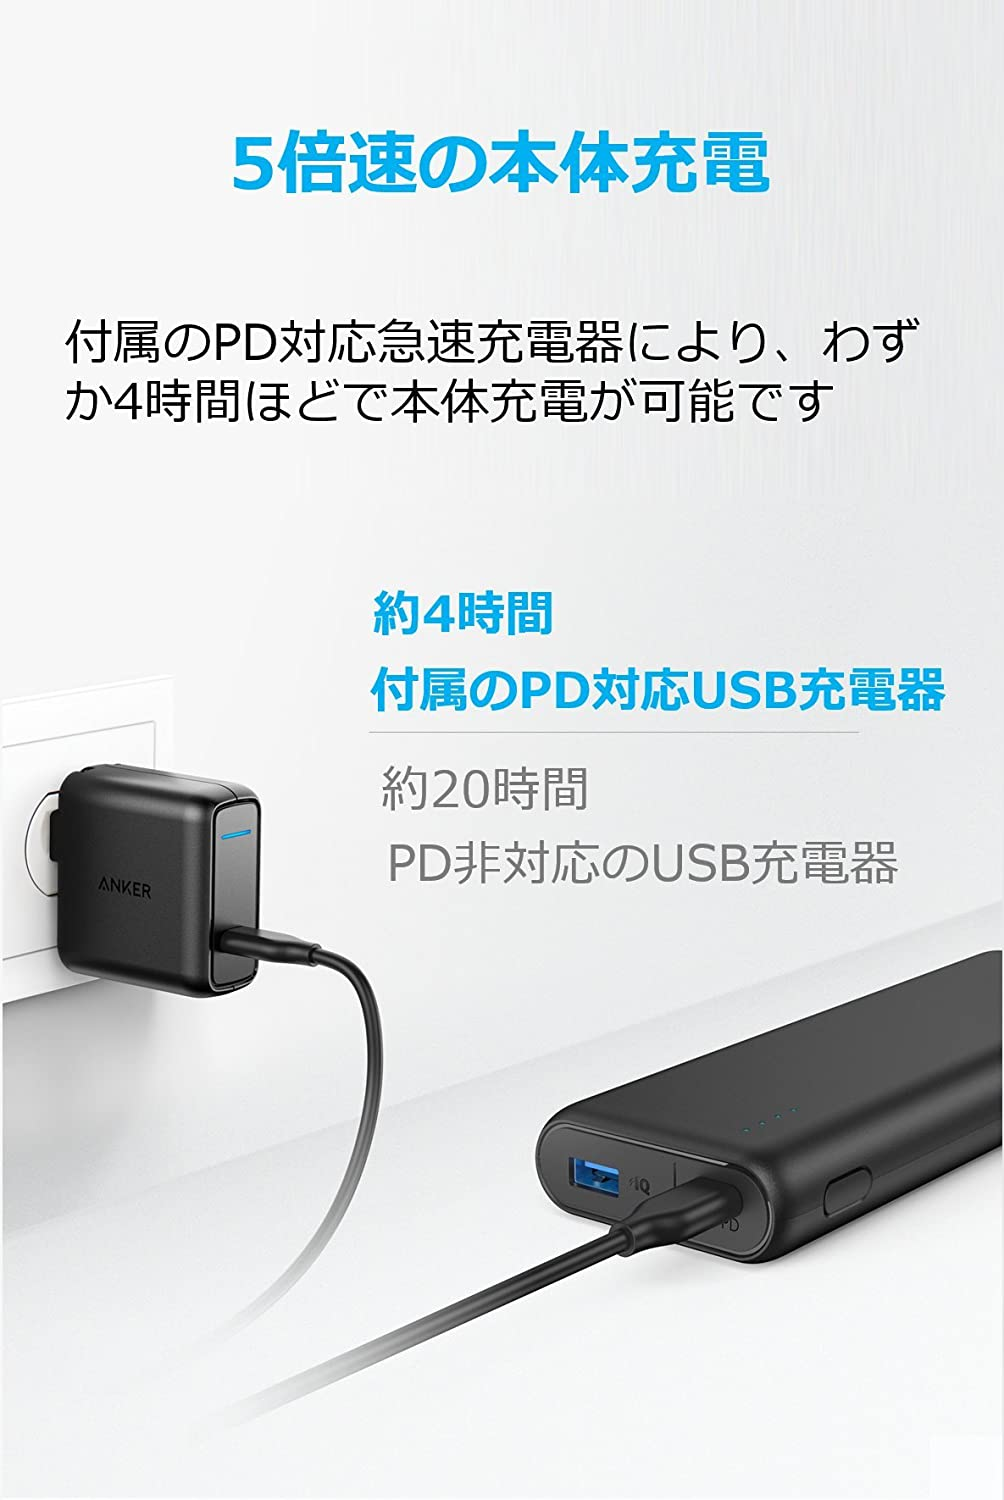 Amazon Anker Powercore Speed 20000 Pd Power Delivery Quick Charge 30 Black A1274011 20100mah Usb Ciphone Android 20188